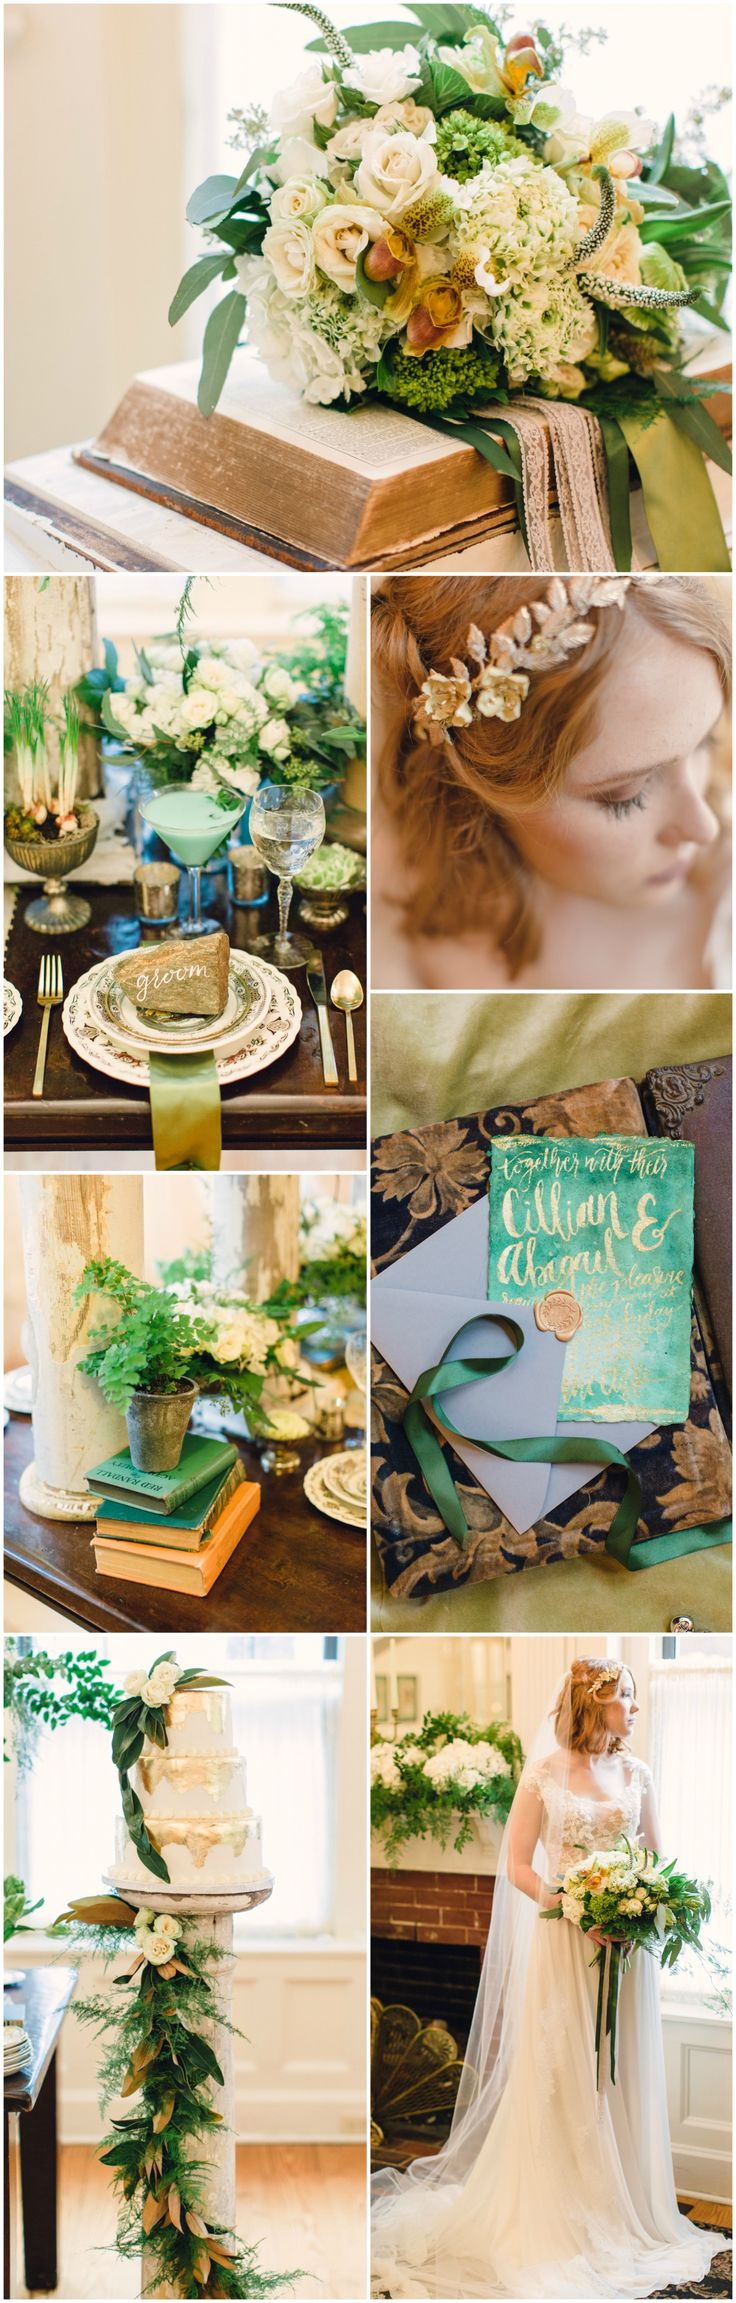 Irish wedding design, green and gold and ivory, vintage details, floral chinaware, wedding cake, watercolor invitation suite // Joanna Fisher Photography